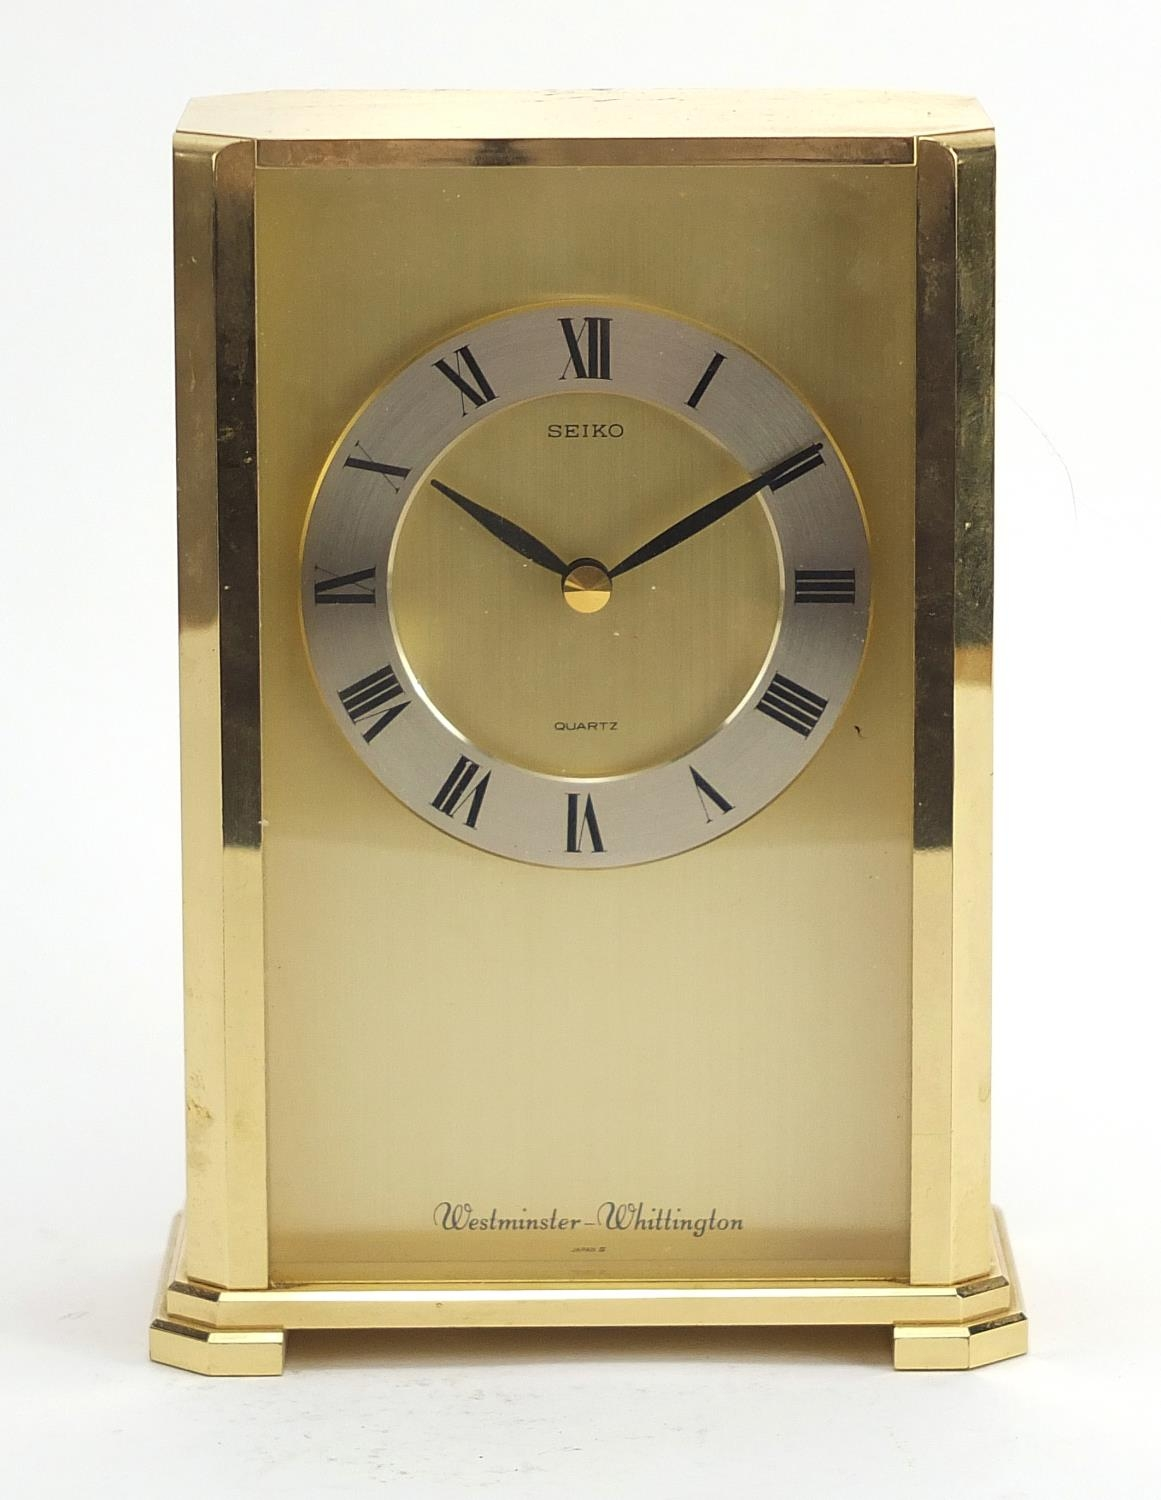 Seiko Westminster-Whittington mantle clock with Roman numerals, 20cm high : For Further Condition - Image 2 of 4